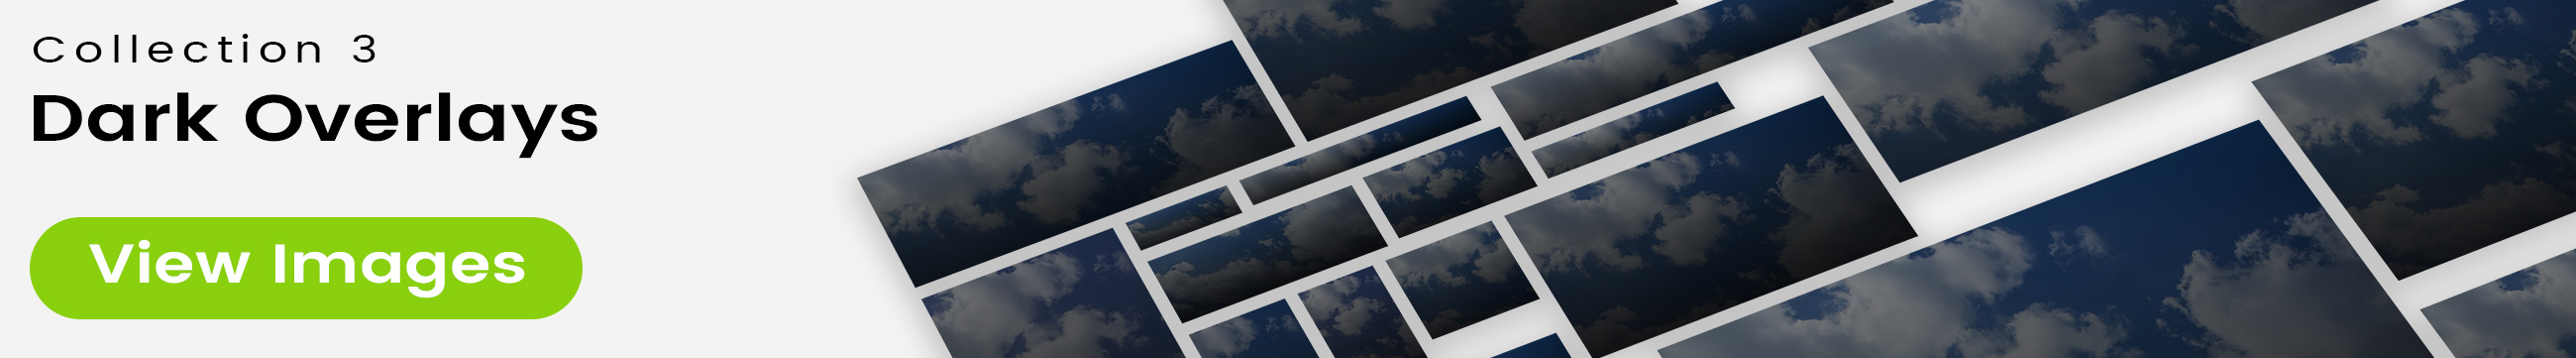 See 25 bonus images included with clouds stock image 9504. Collection 3 of 4 features a dark overlay design.